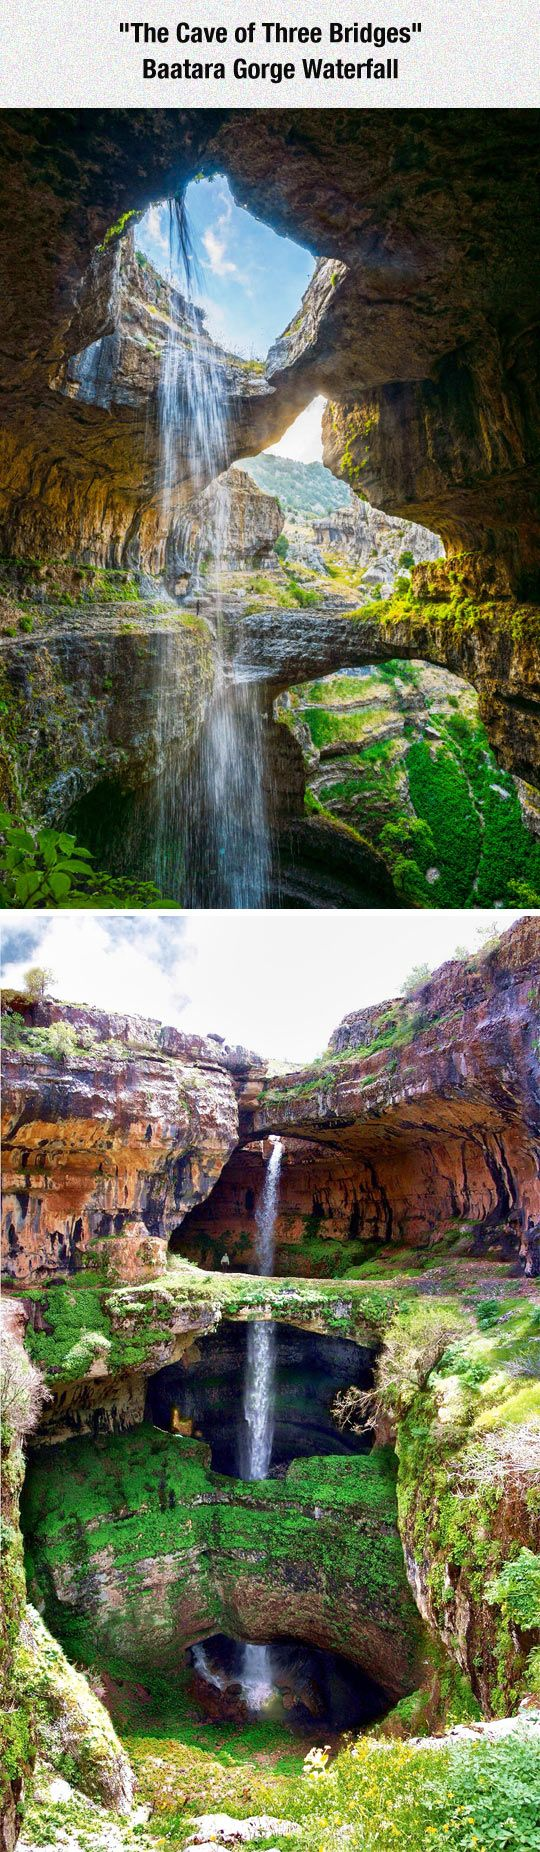 "The Baatara gorge waterfall (also known as the ""Cave of the Three Bridges"") in Tannourine, Lebanon. The waterfall drops 255 metres (837 ft) into the Baatara Pothole, a cave of Jurassic limestone located on the Lebanon Mountain Trail."